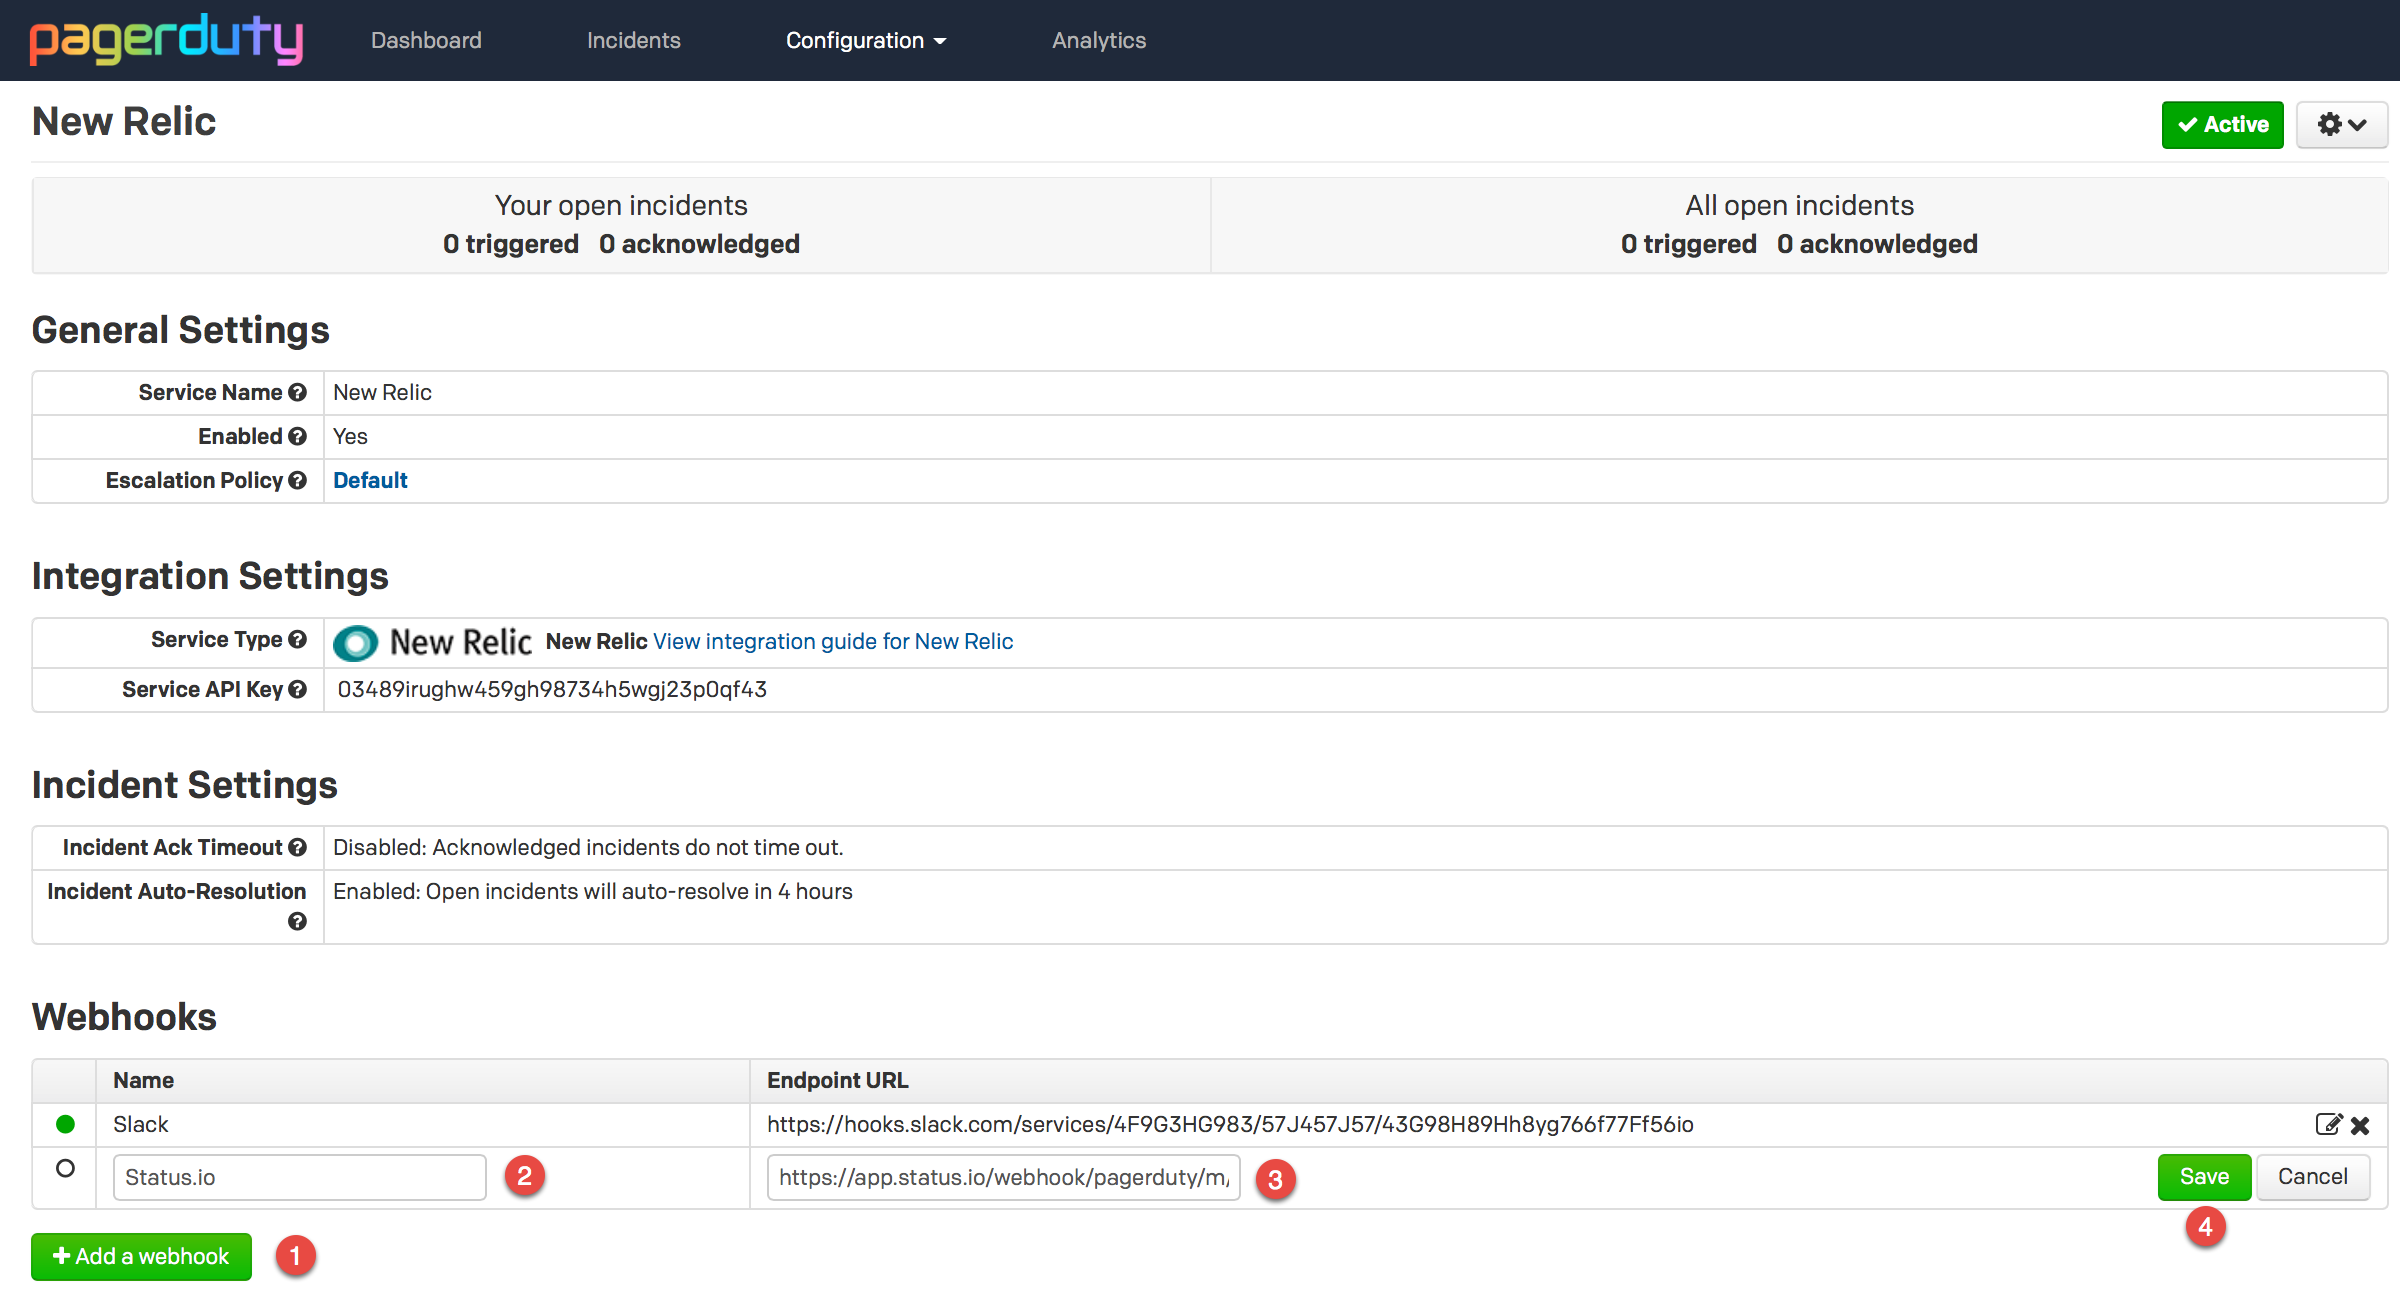 pd-webhook-new-with-content-d